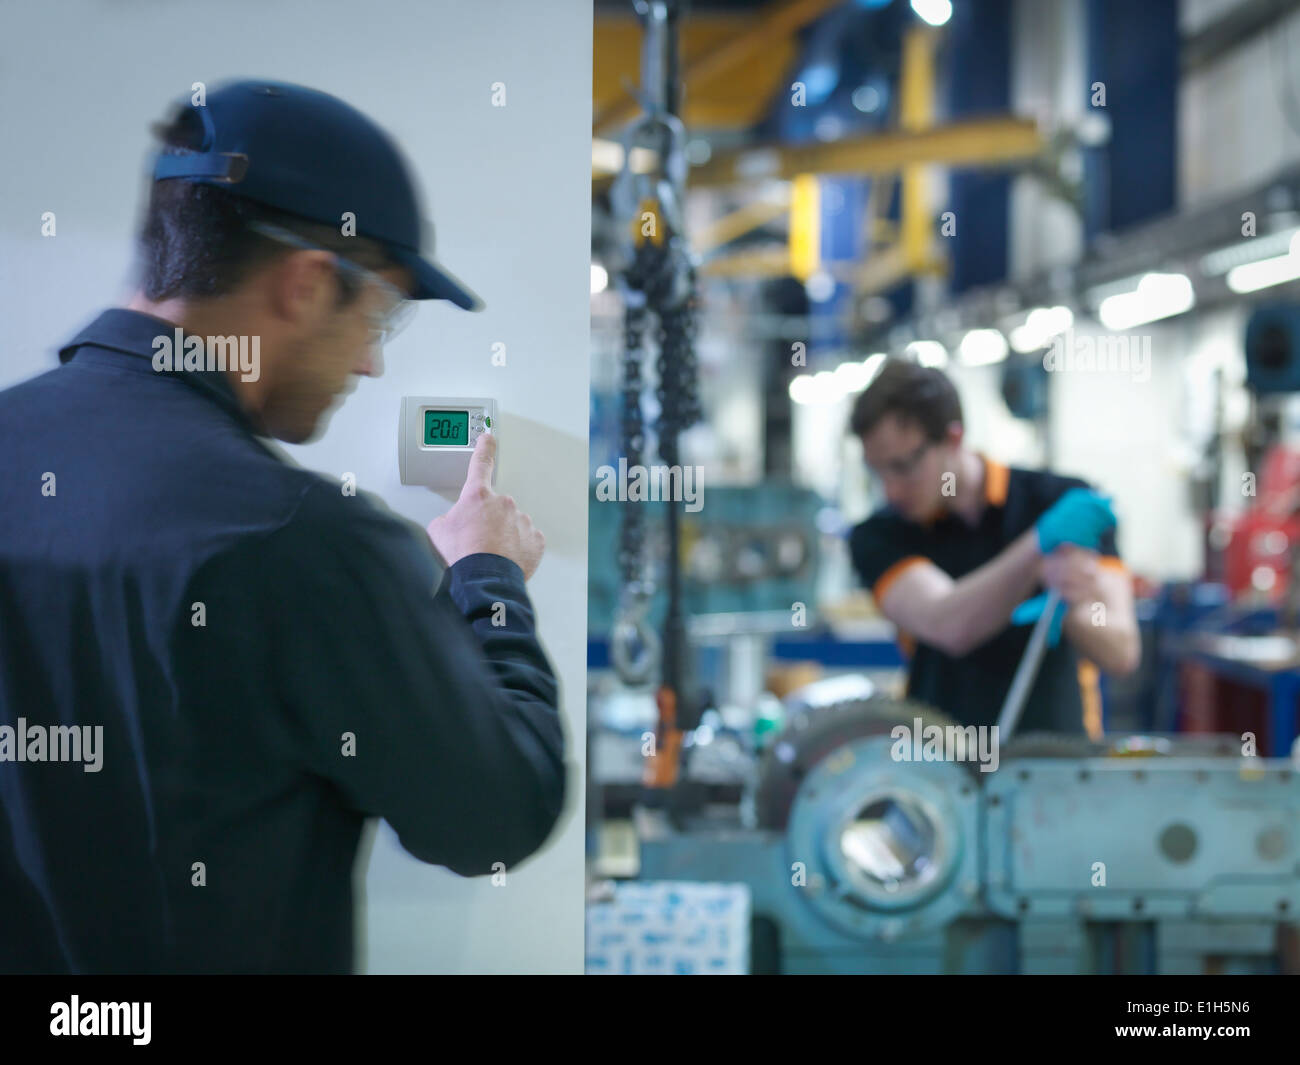 Worker adjusting thermostat in factory - Stock Image